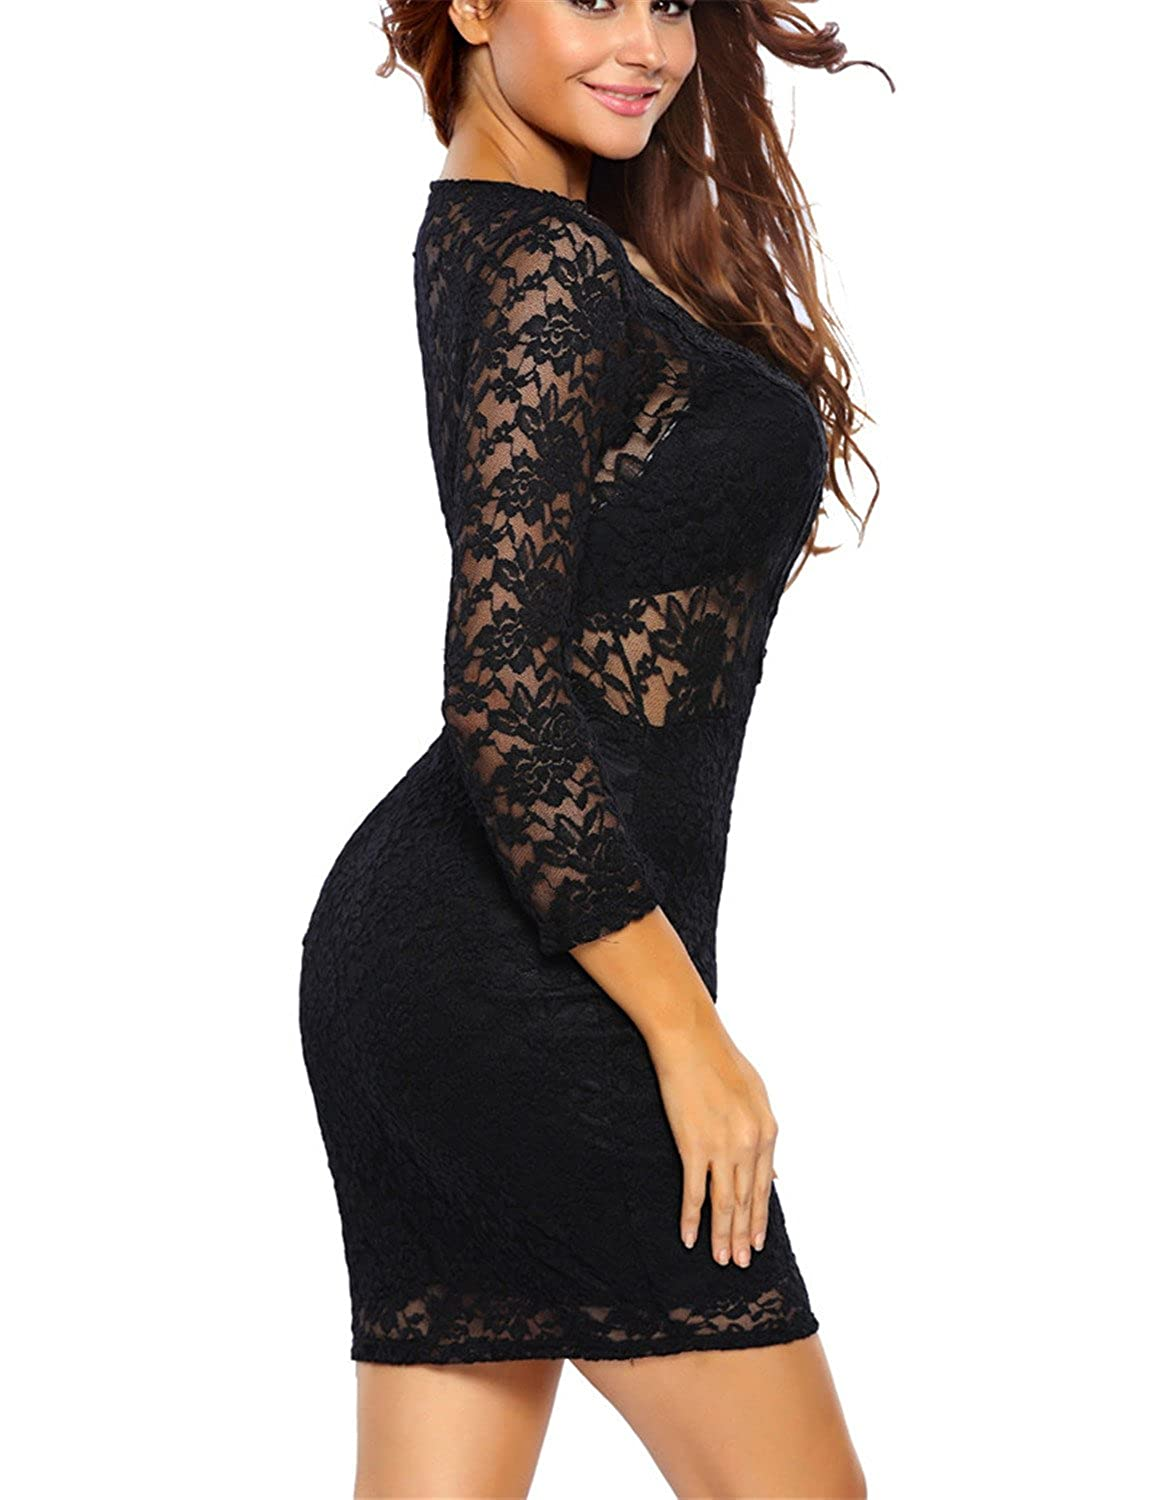 Frozac Mujeres Sexy Negro Encaje Mini Vestidos New Otoño Nueva Moda V Profundo Club nocturno Bodycon Vestidos Black XXL at Amazon Womens Clothing store: